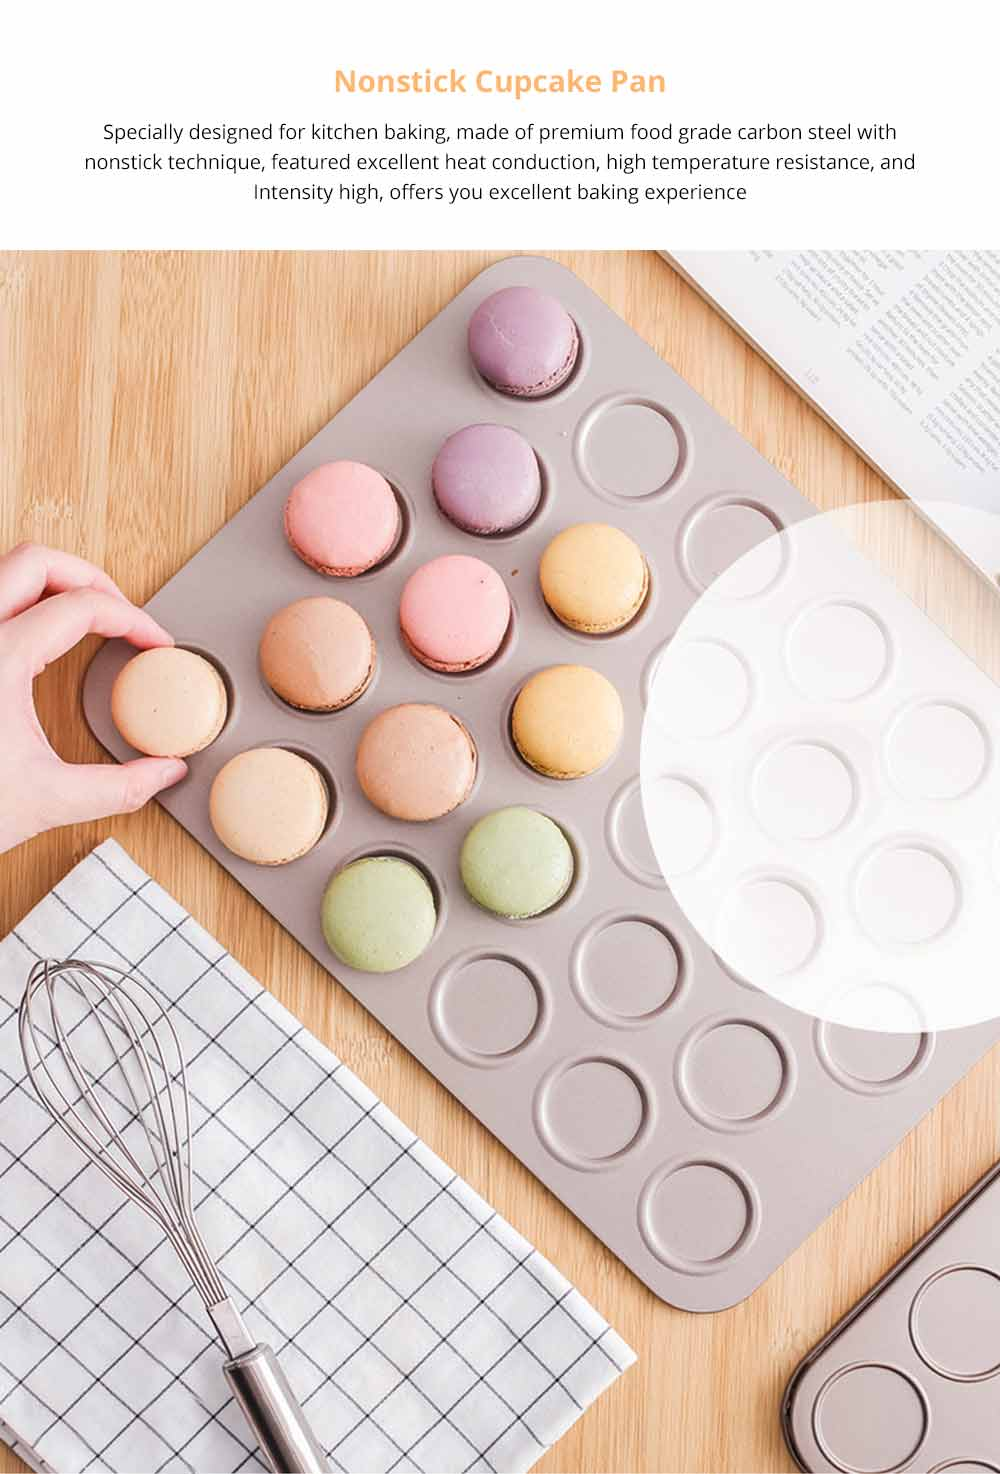 Universal Food Grade Nonstick Bakeware for Cookie Macarons